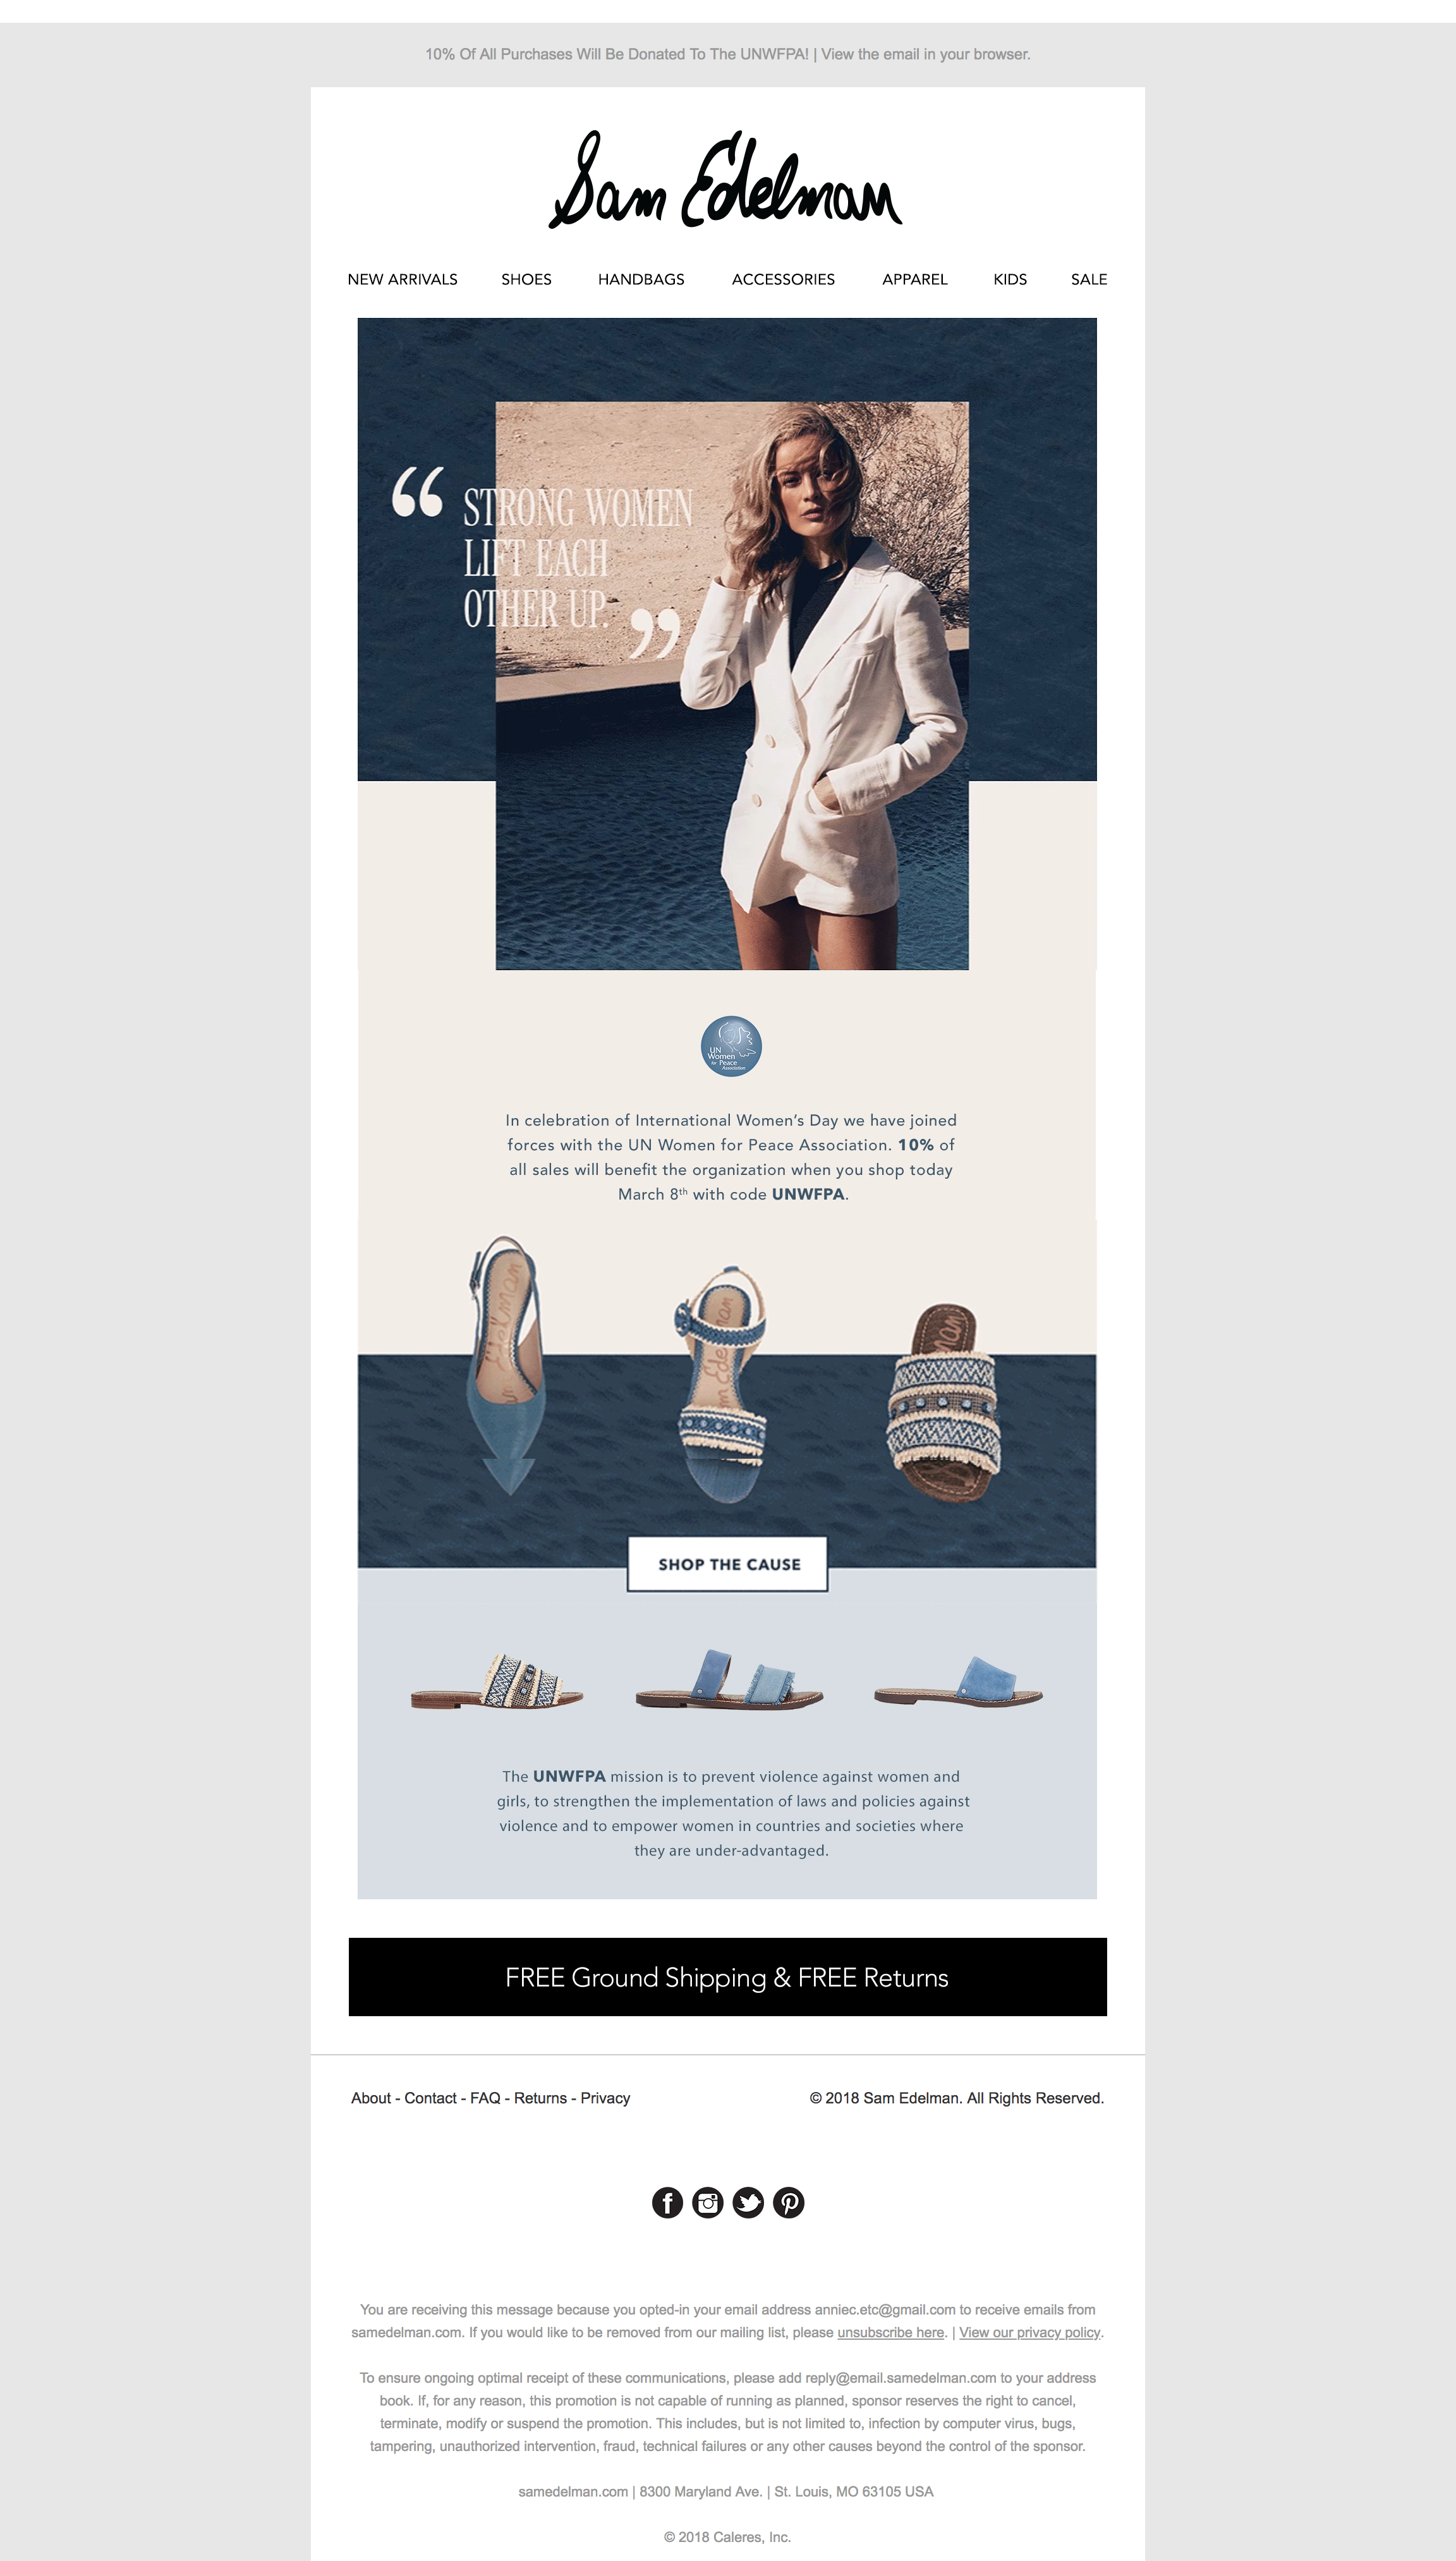 Good Example Of Texture Use Balancing Imagery Copy With Negative Space Email Design Inspiration Email Design Web Development Design